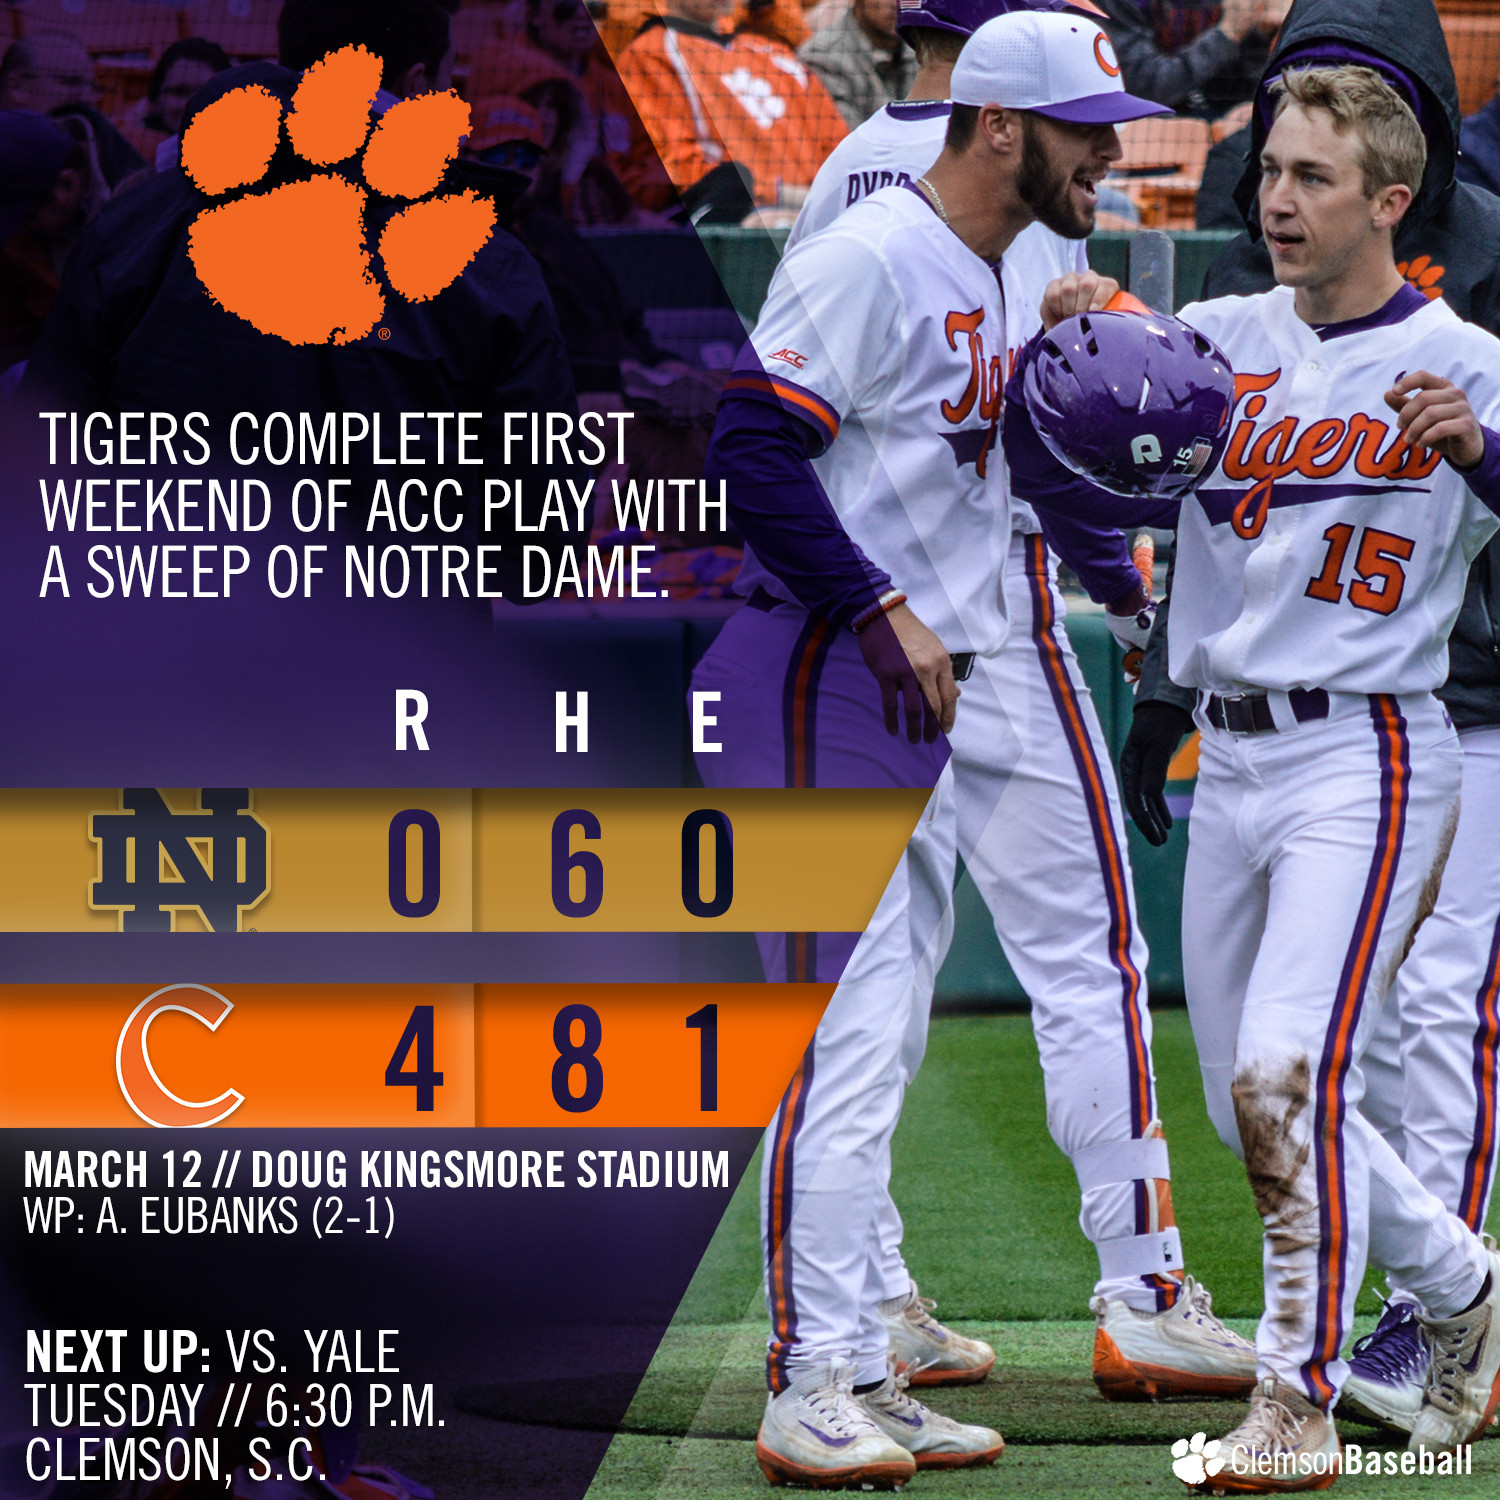 Clemson Sweeps ND With 4-0 Win